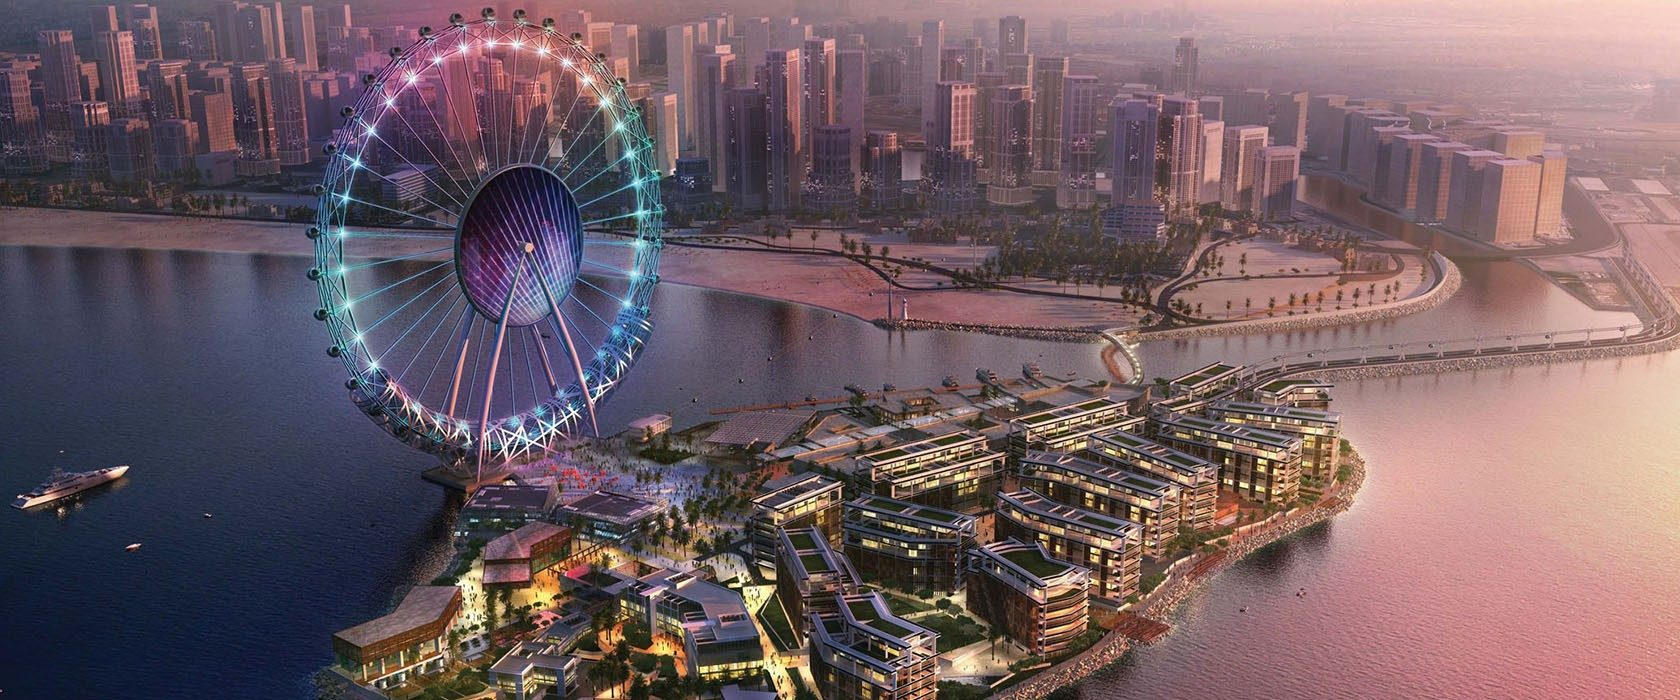 The Ain Dubai, the largest Ferris wheel in the world (opening 2019)